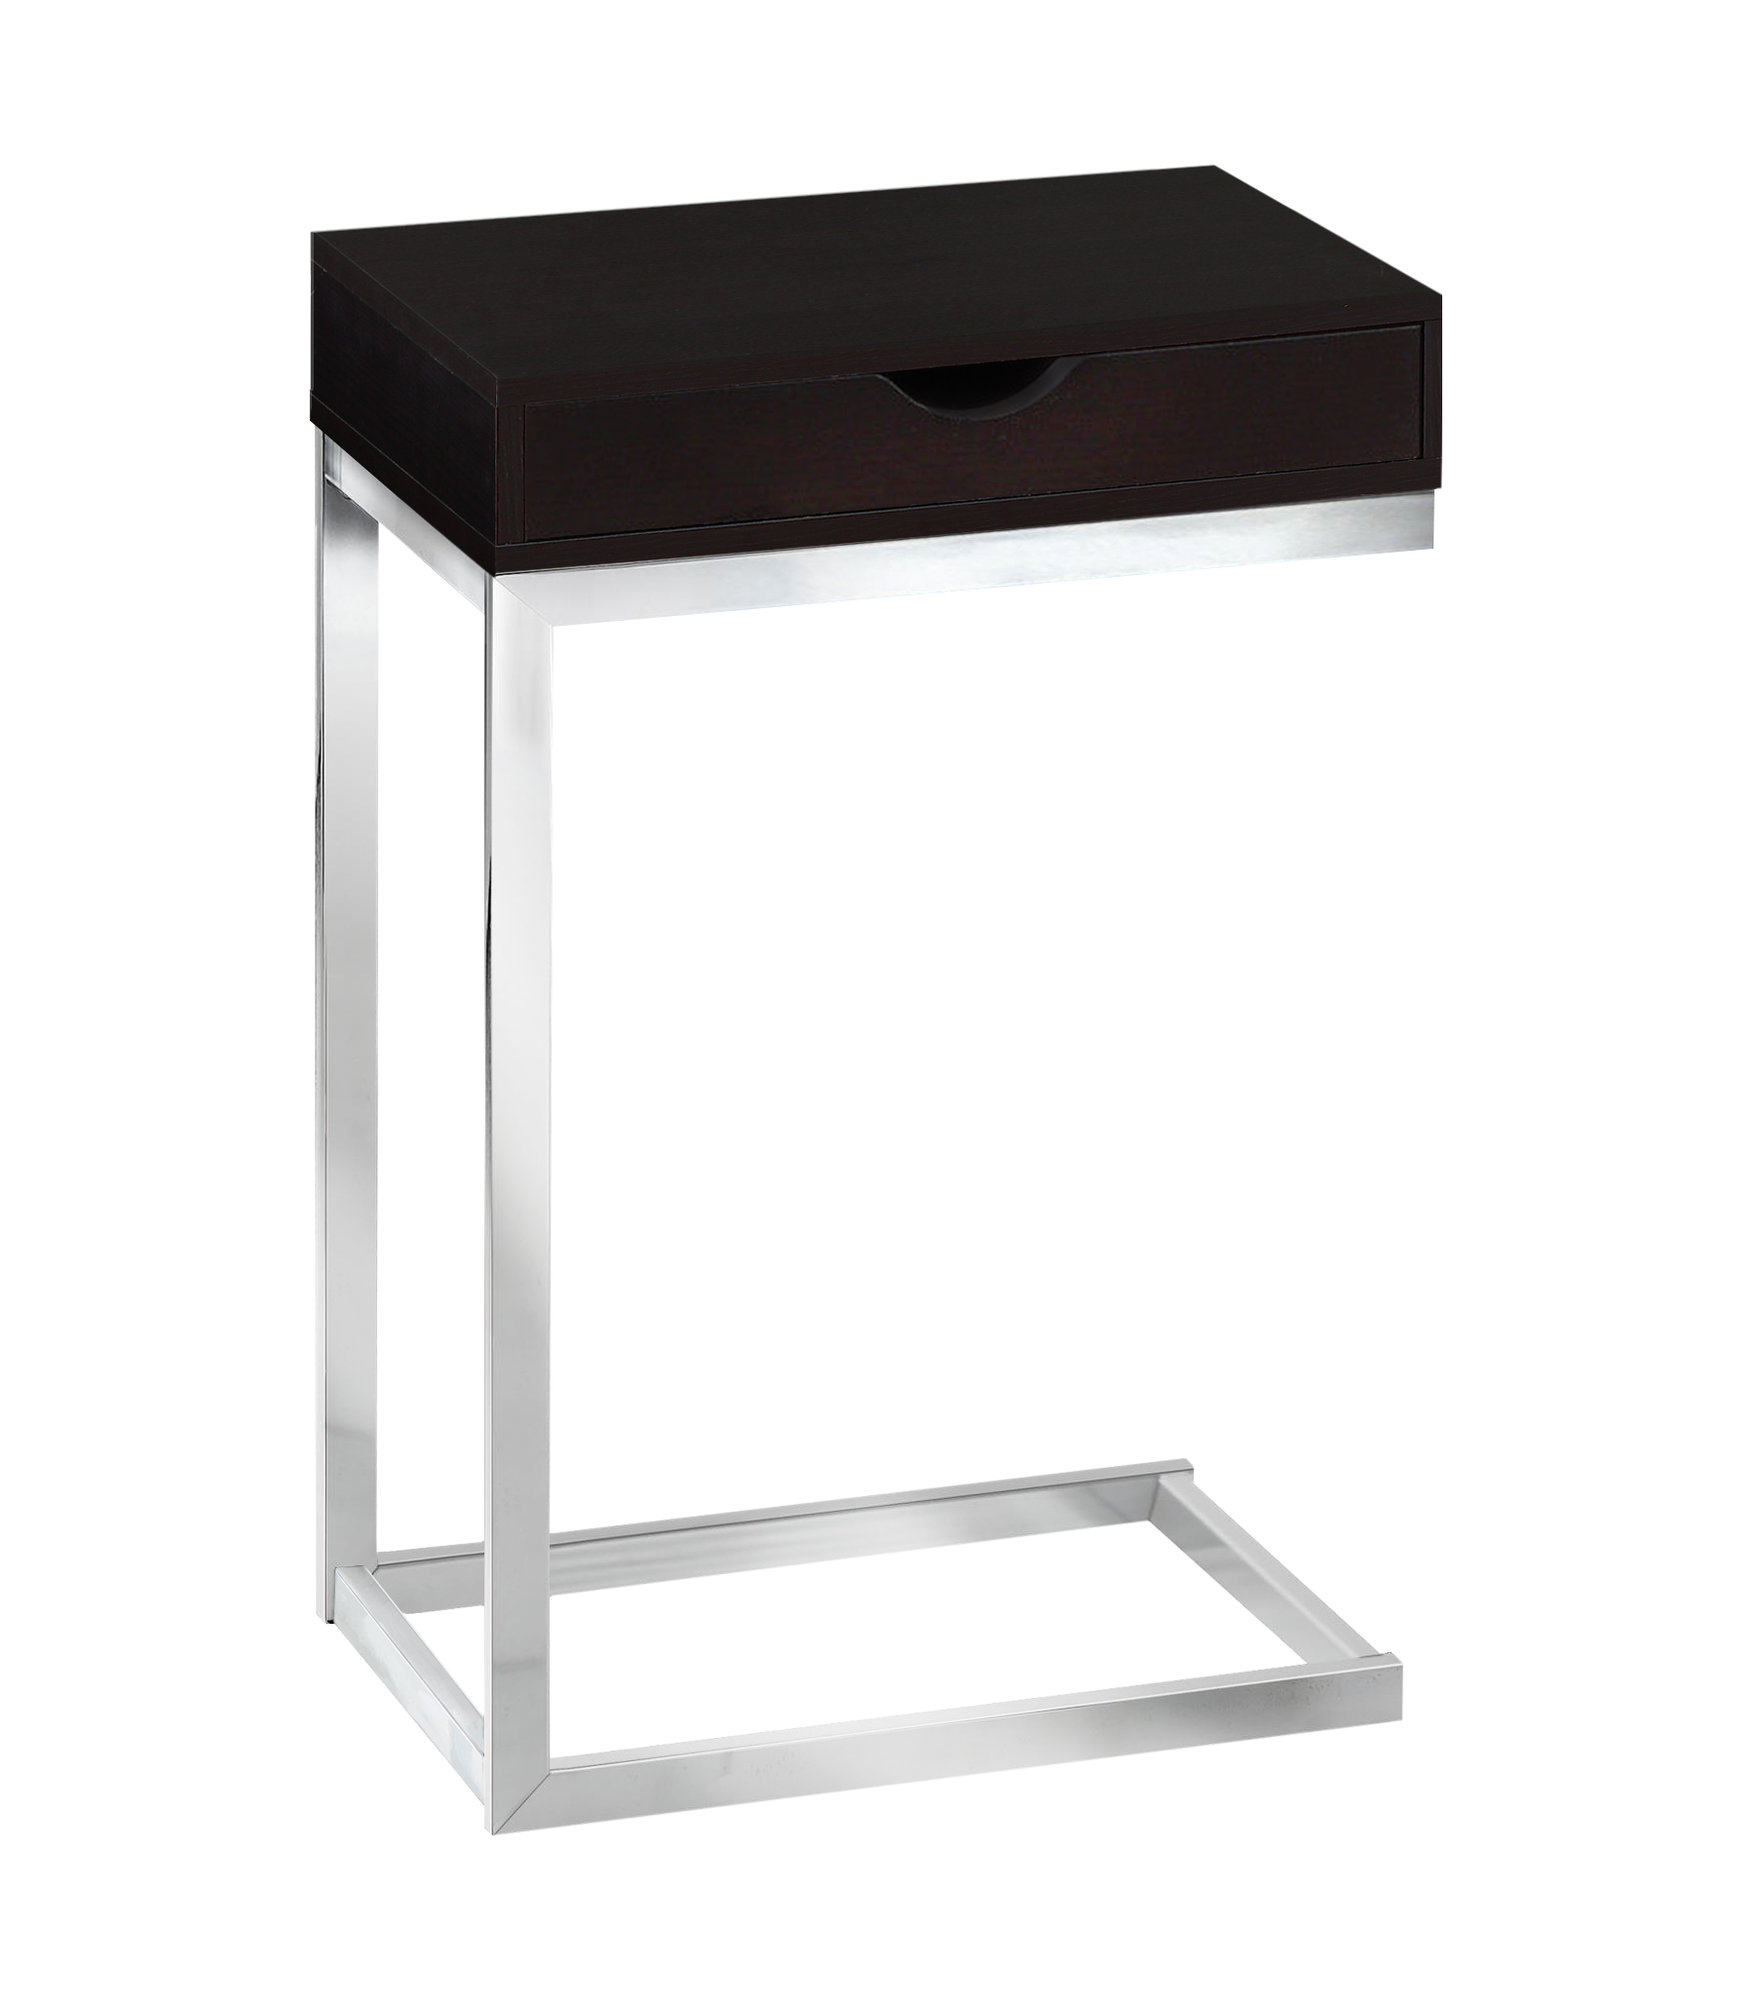 """10.25"""" x 15.75"""" x 24.5"""" Cappuccino Finish Metal Accent Table"""